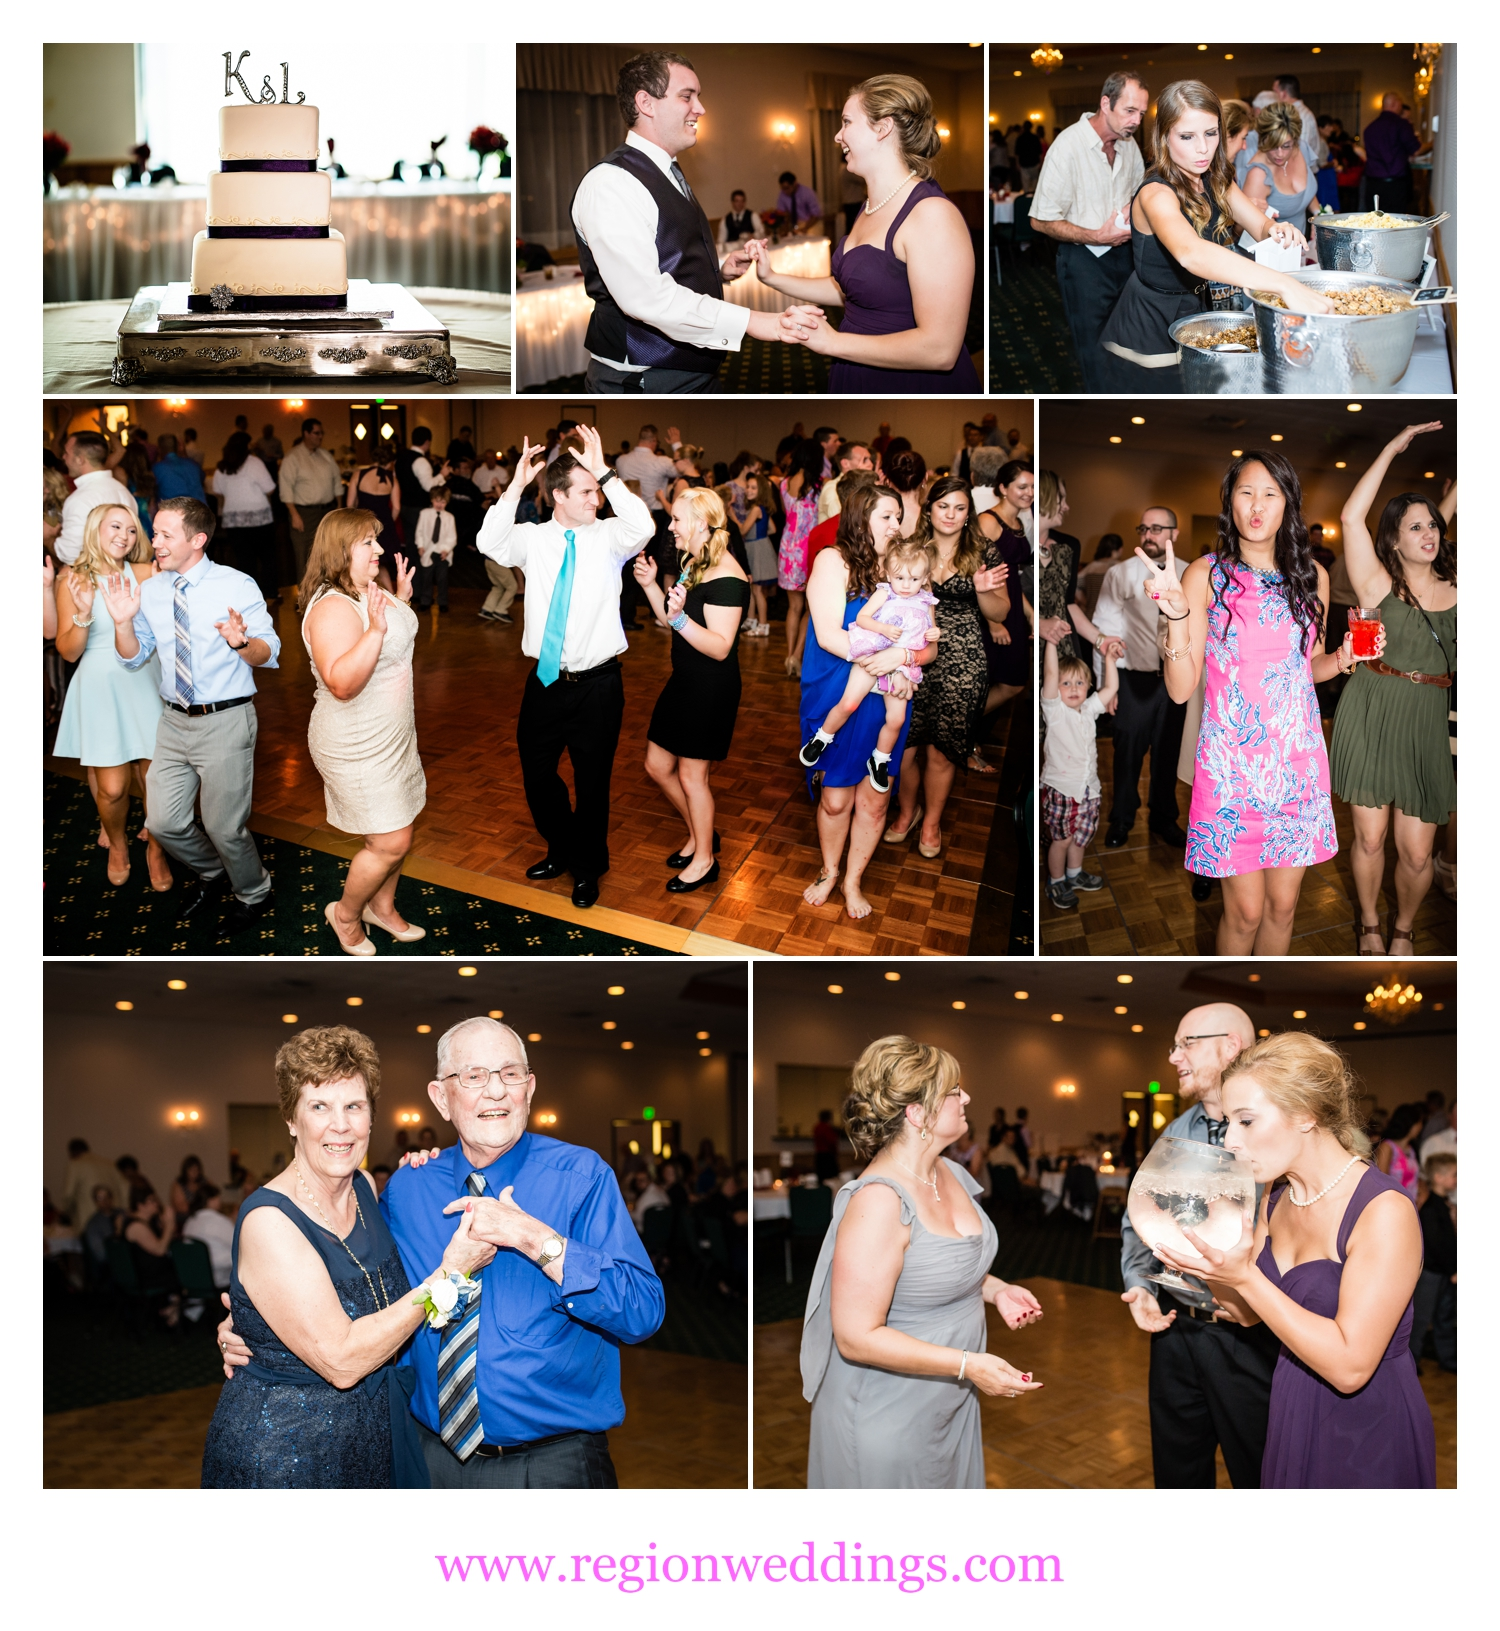 Fun times at a wedding reception at The Patrician in Schererville, Indiana.